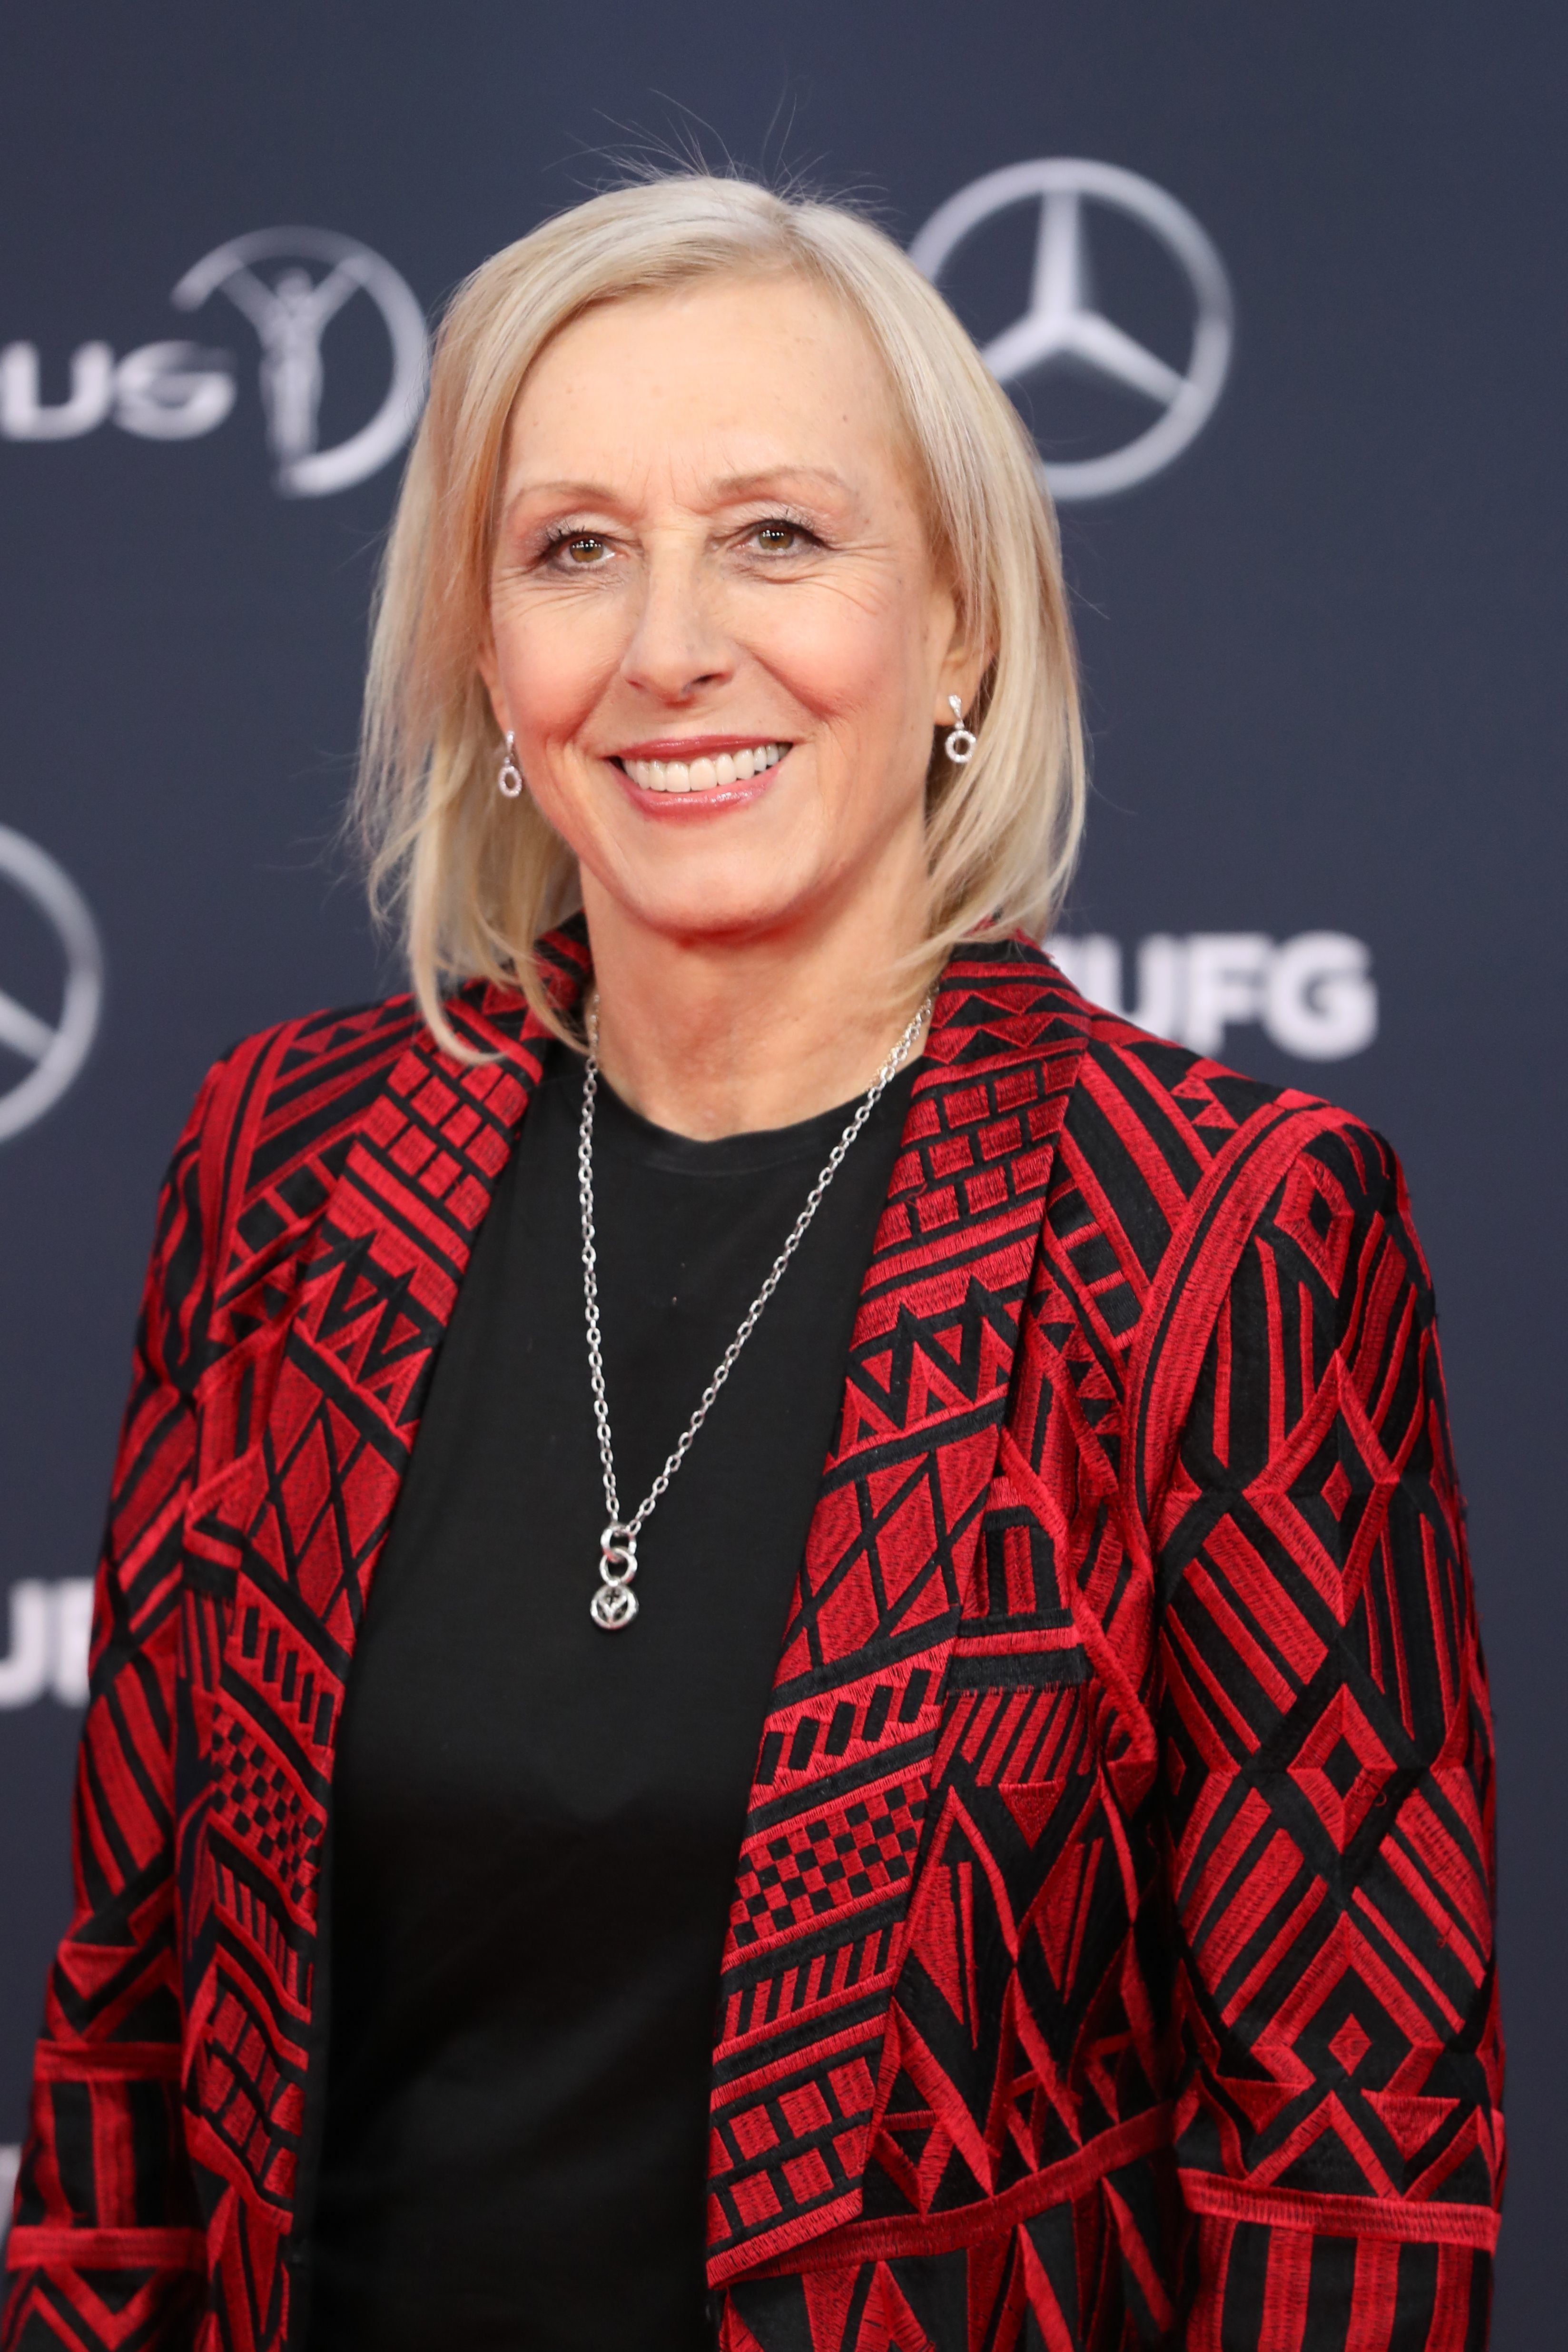 Martina Navratilova angered LGBTQ activists when she claimed it was